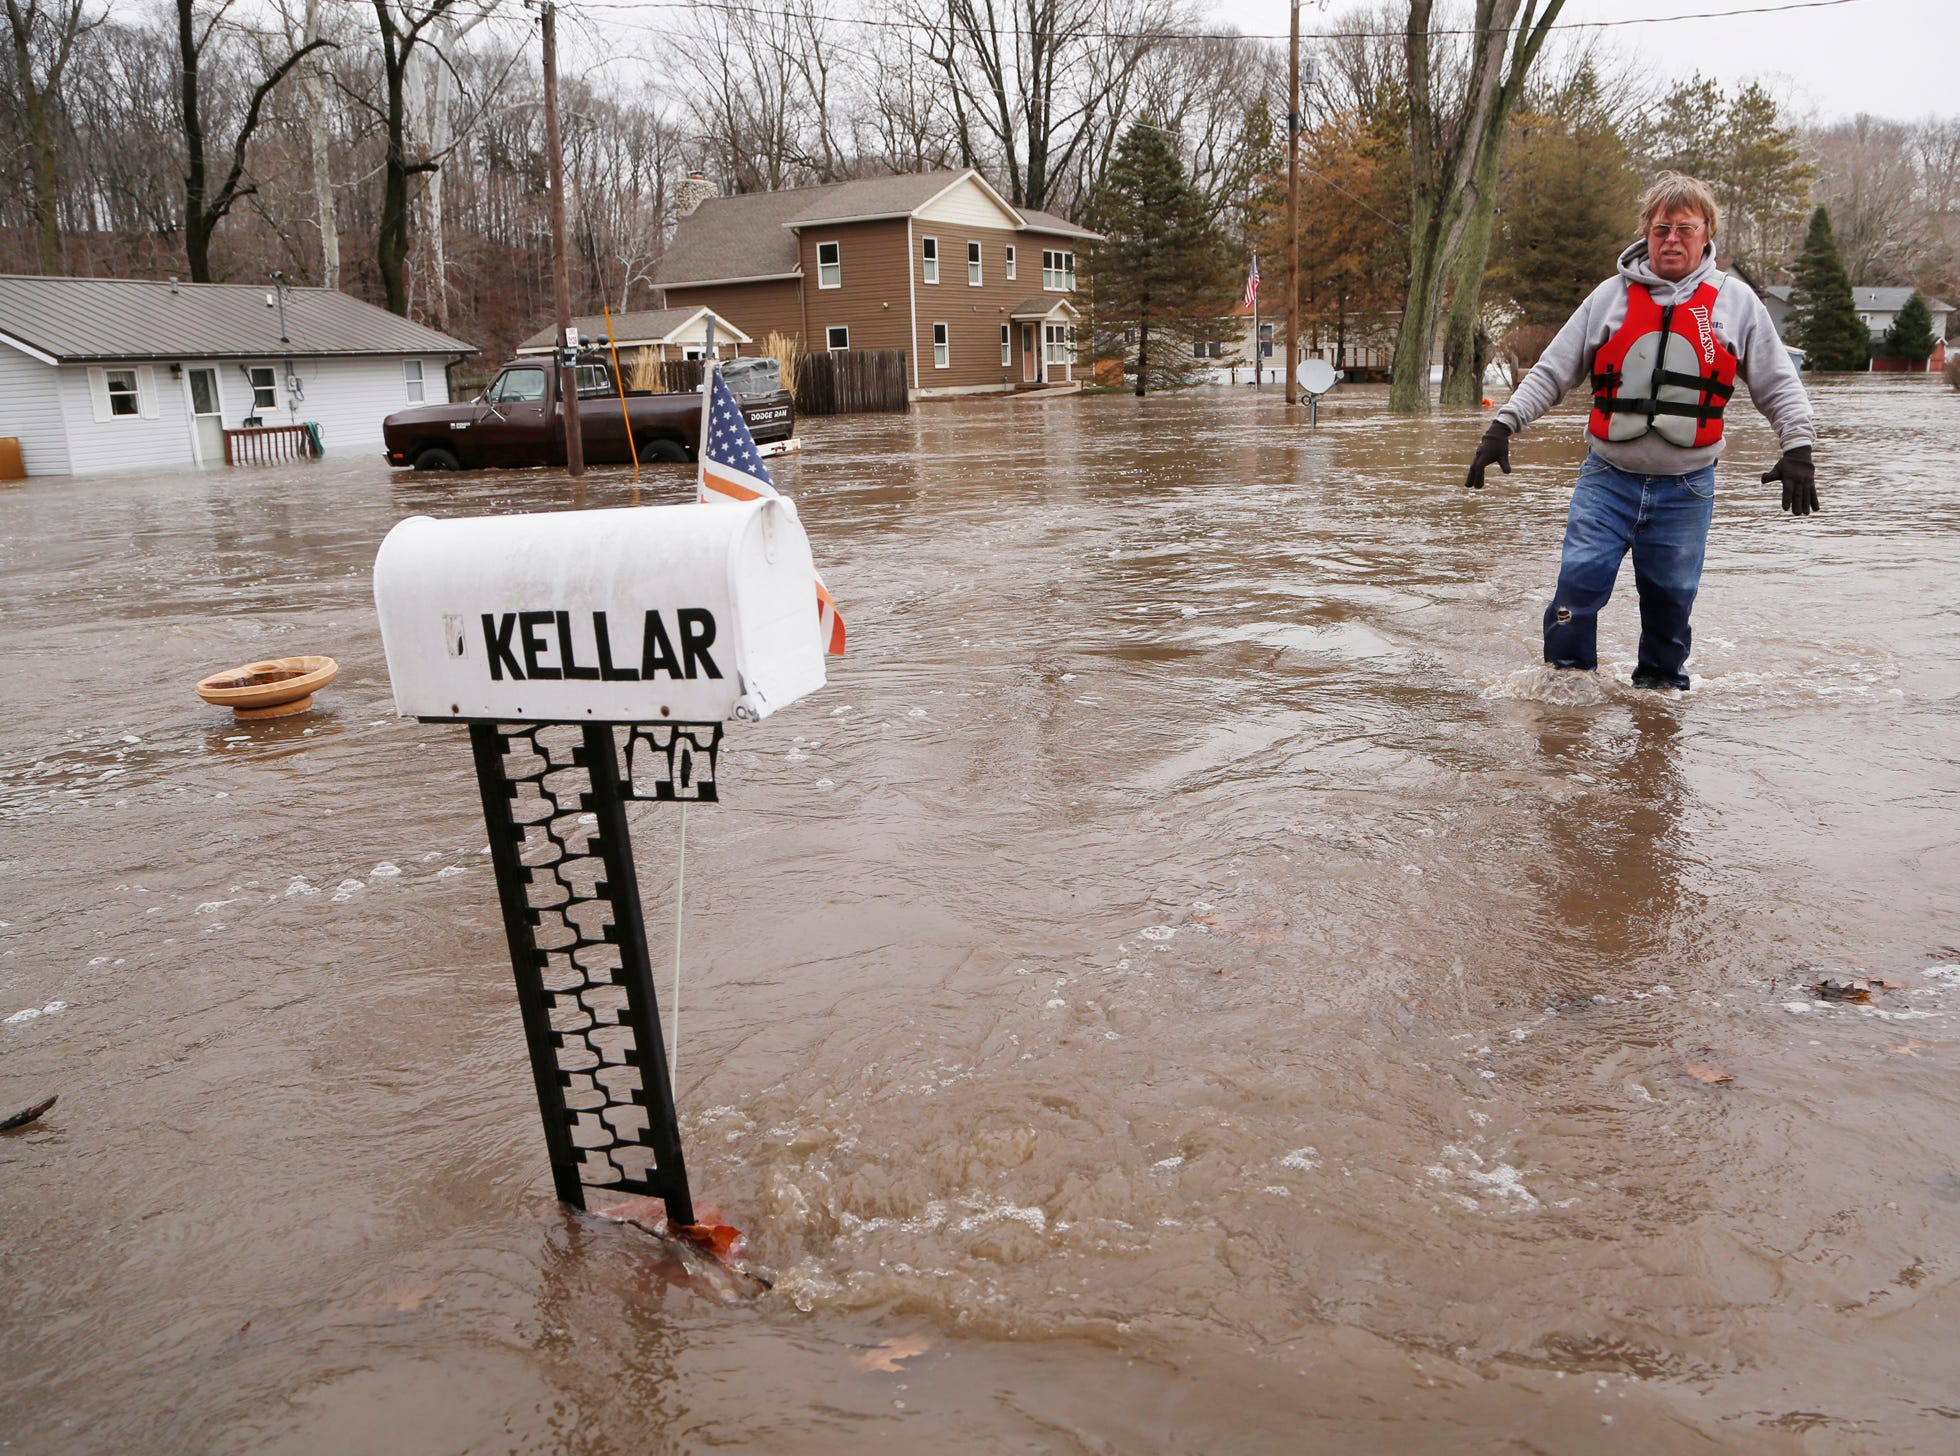 Dennis Kellar carefully walks through flood waters from his house at 11178 Horseshoe Bend Road Wednesday, February 21, 2018, near Brookston. Kellar's house next to the Tippecanoe River has been flooded several times, but he said this time may actually give him reason to move away.